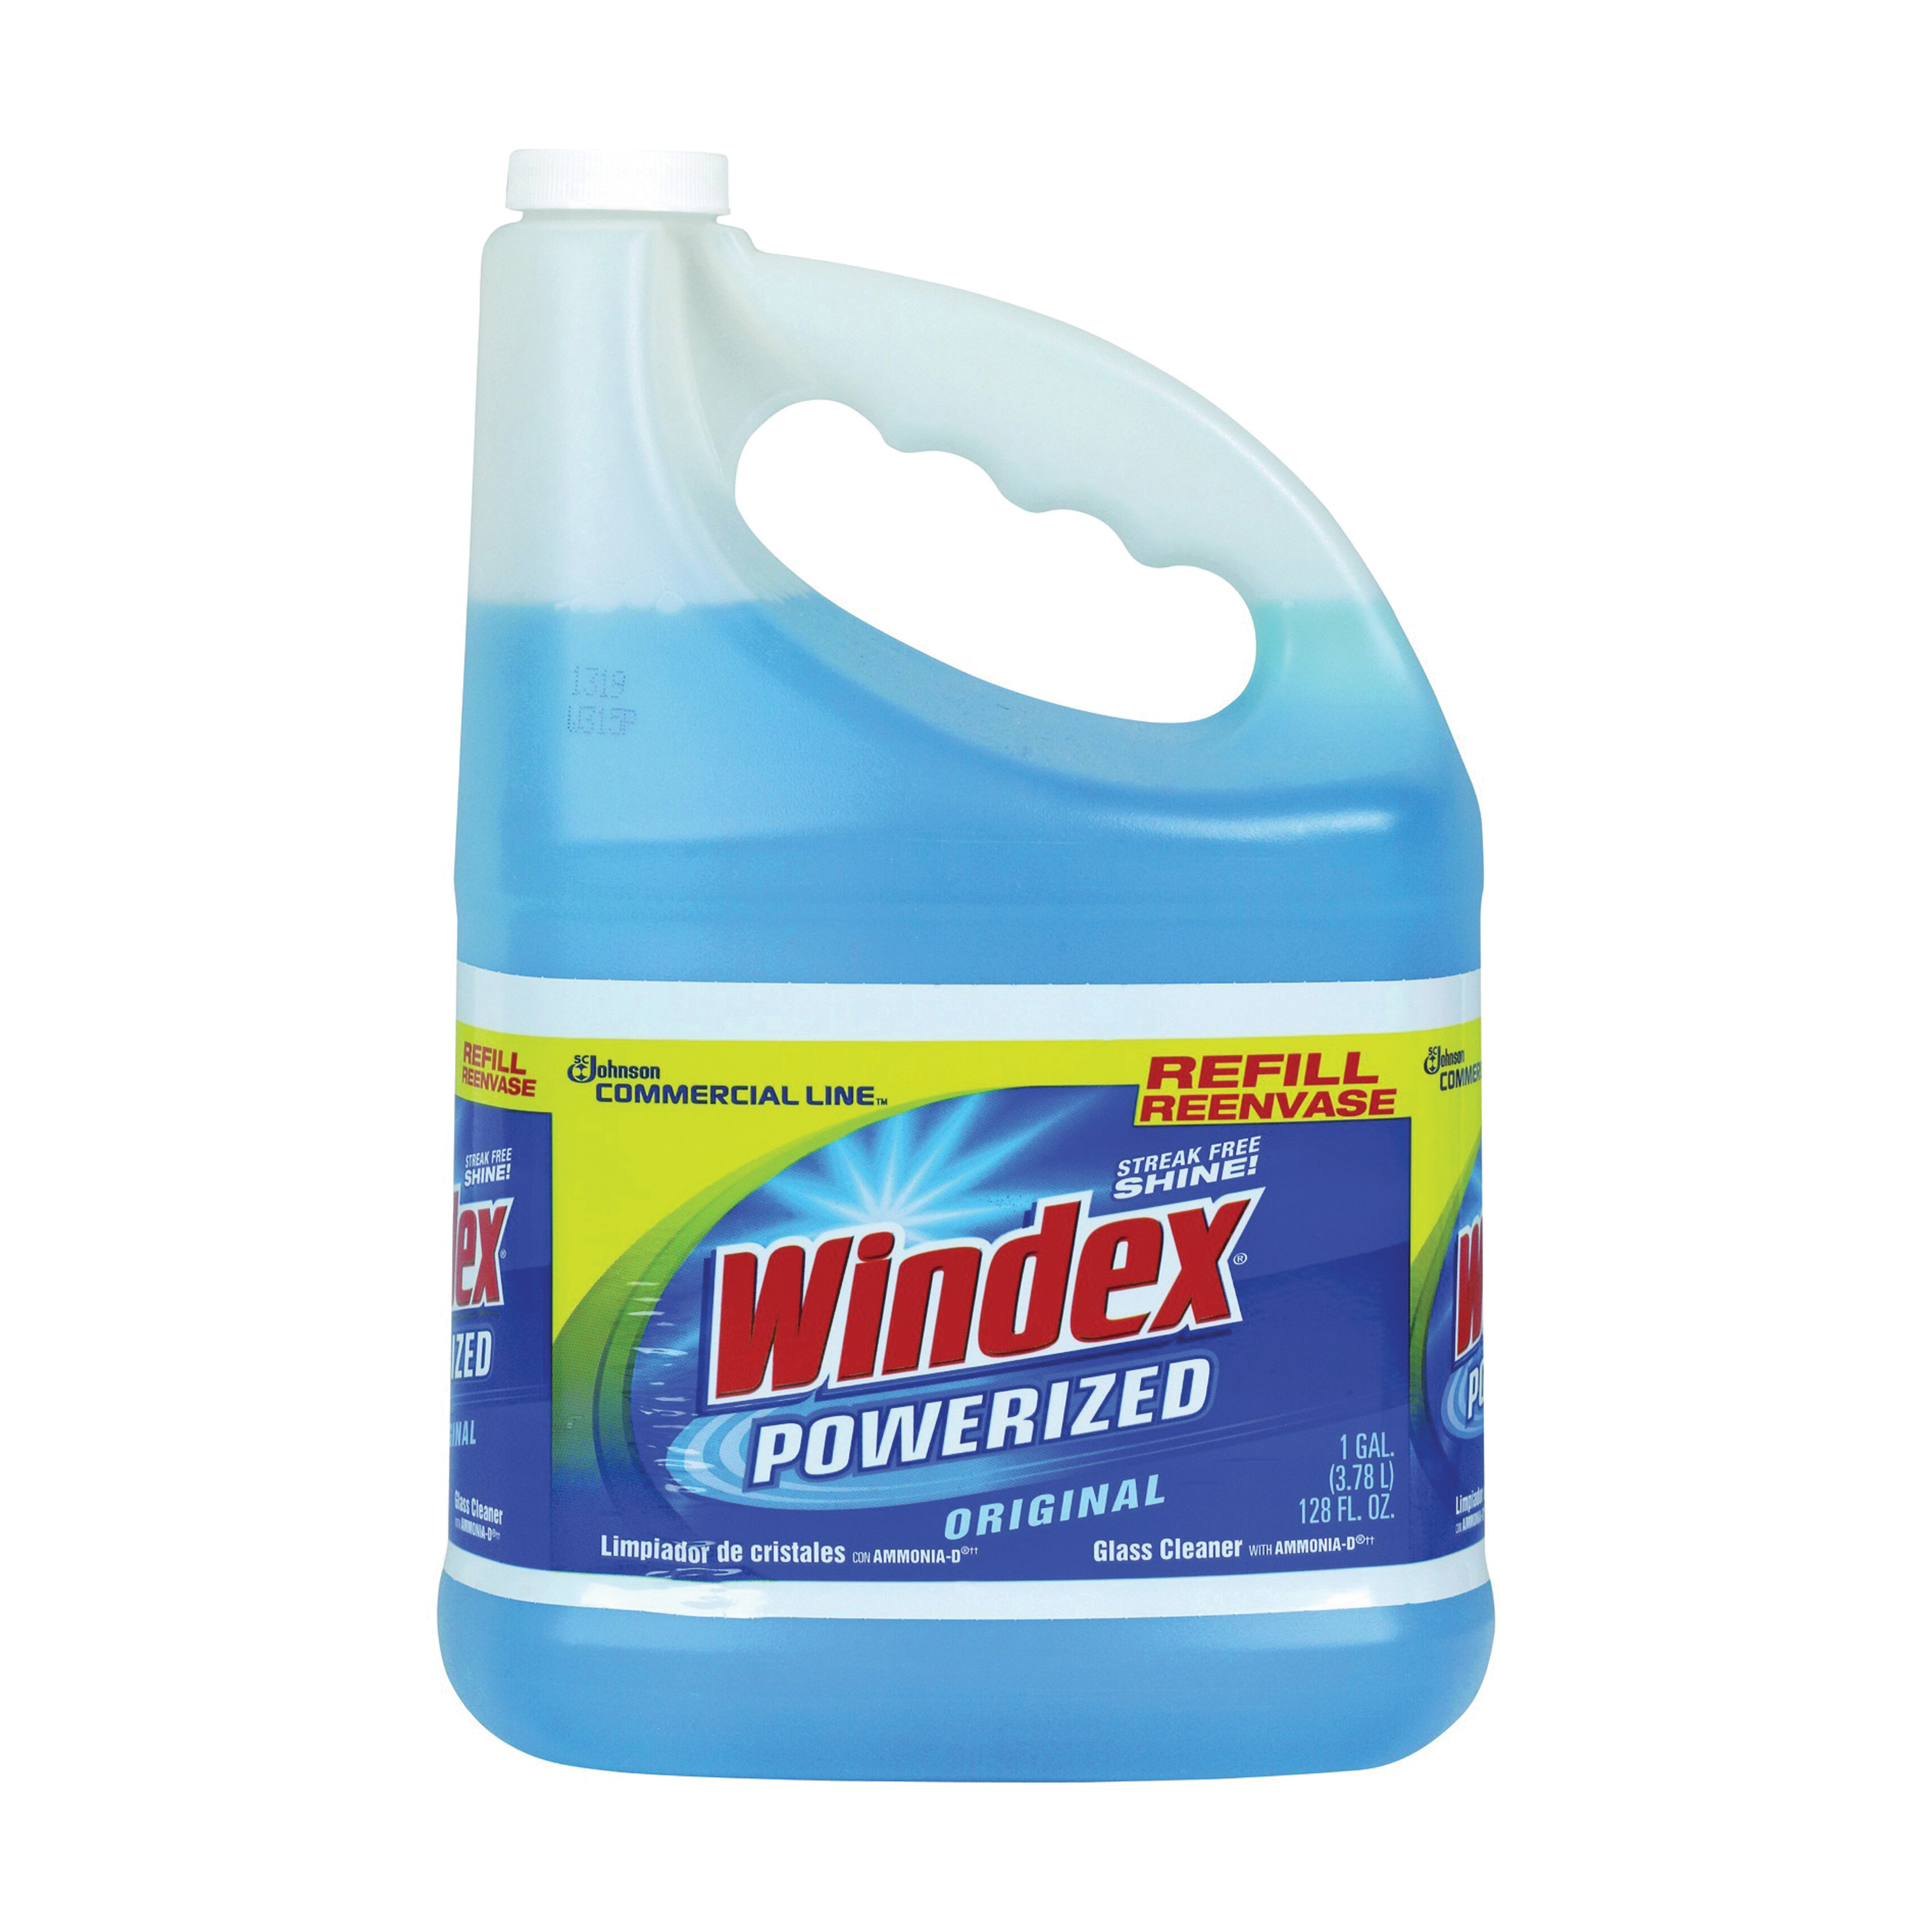 Picture of Windex 12207 Glass Cleaner Refill, 128 oz Package, Bottle, Liquid, Pleasant, Blue